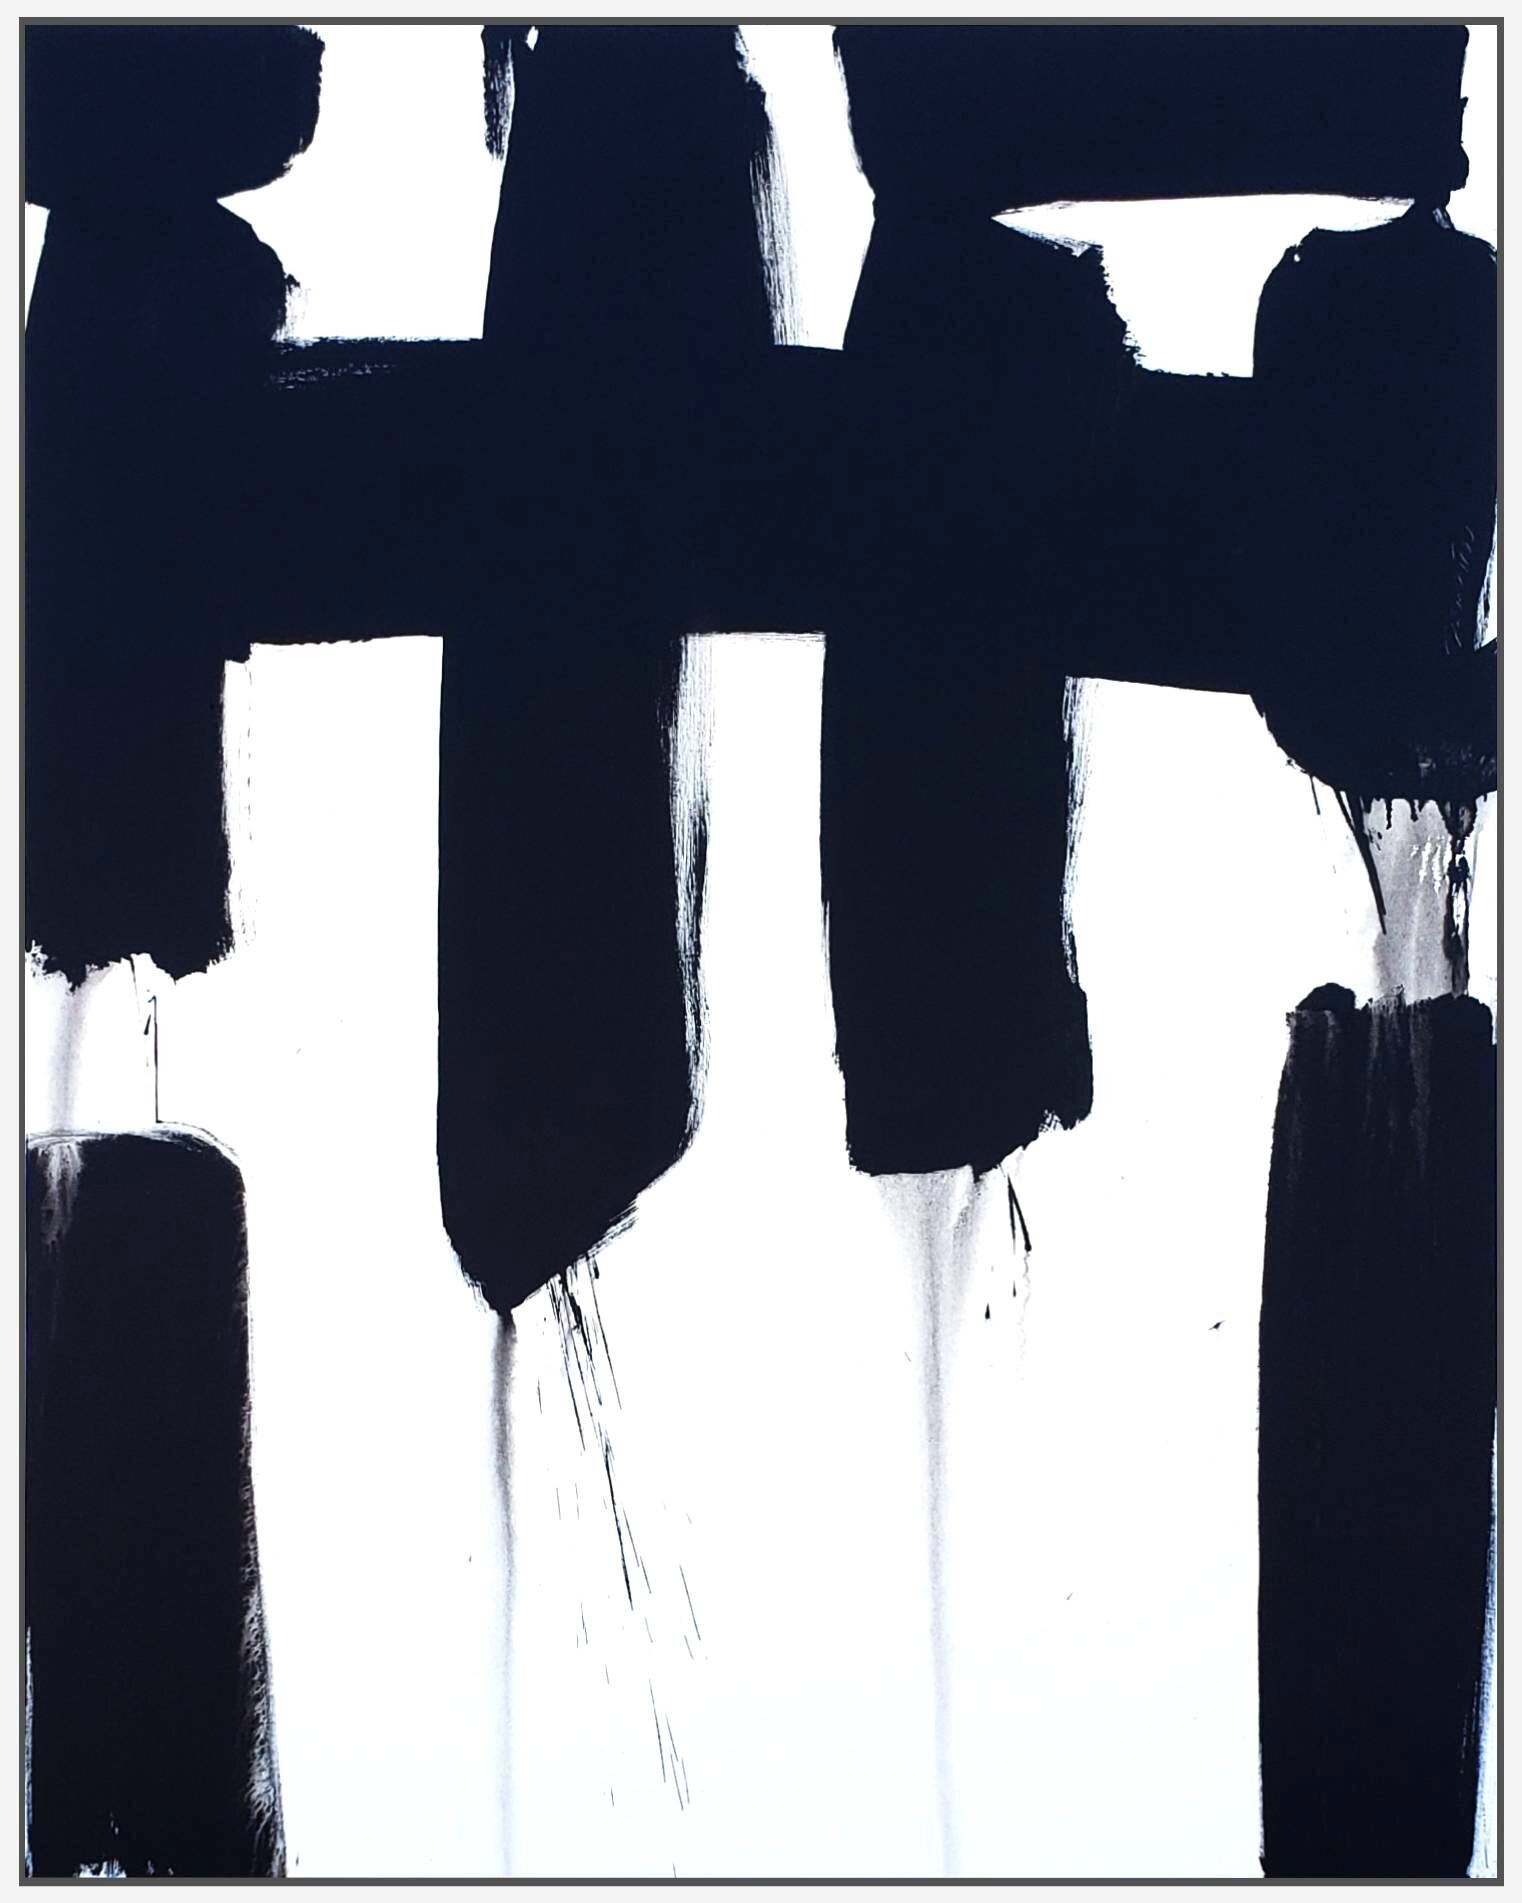 """Black and White #88, 2019, acrylic on canvas, 60"""" x 48"""" (152.4 x 122cm)"""